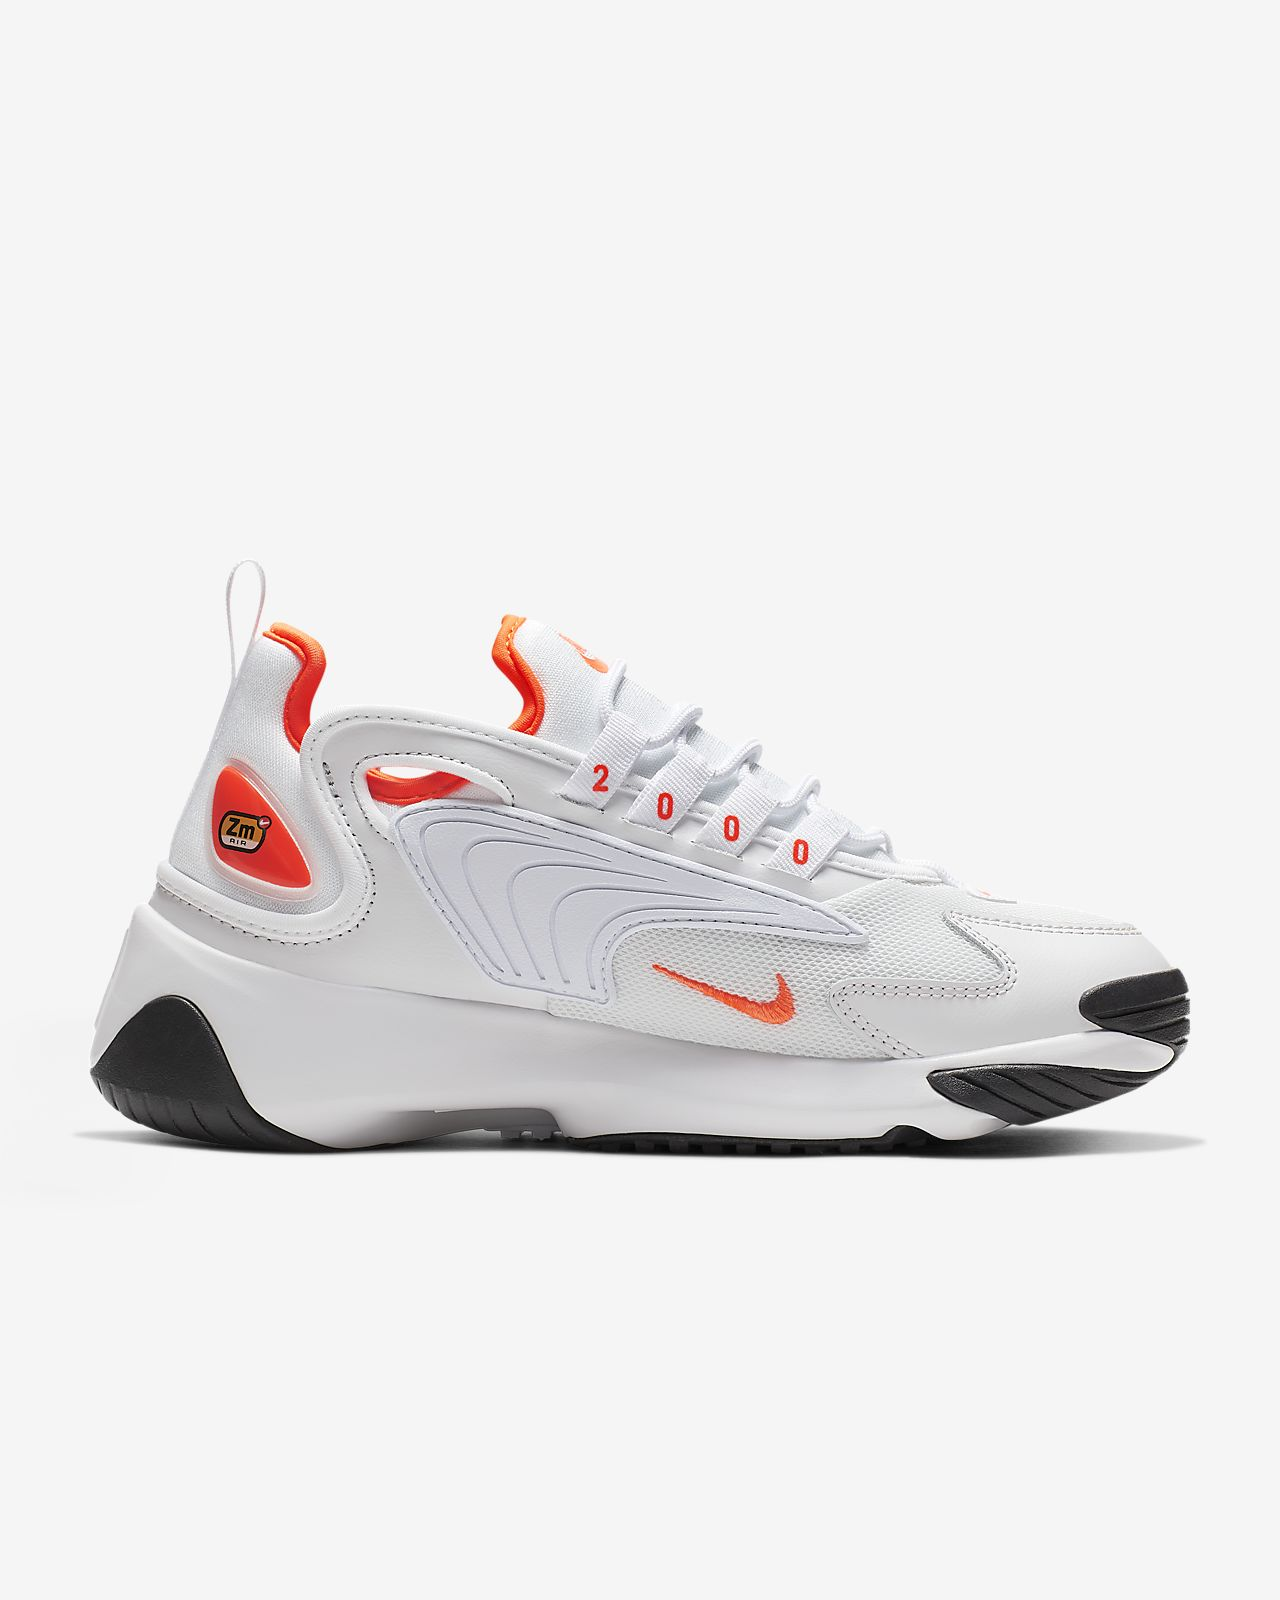 the best attitude 103bb 55783 ... Chaussure Nike Zoom 2K pour Femme